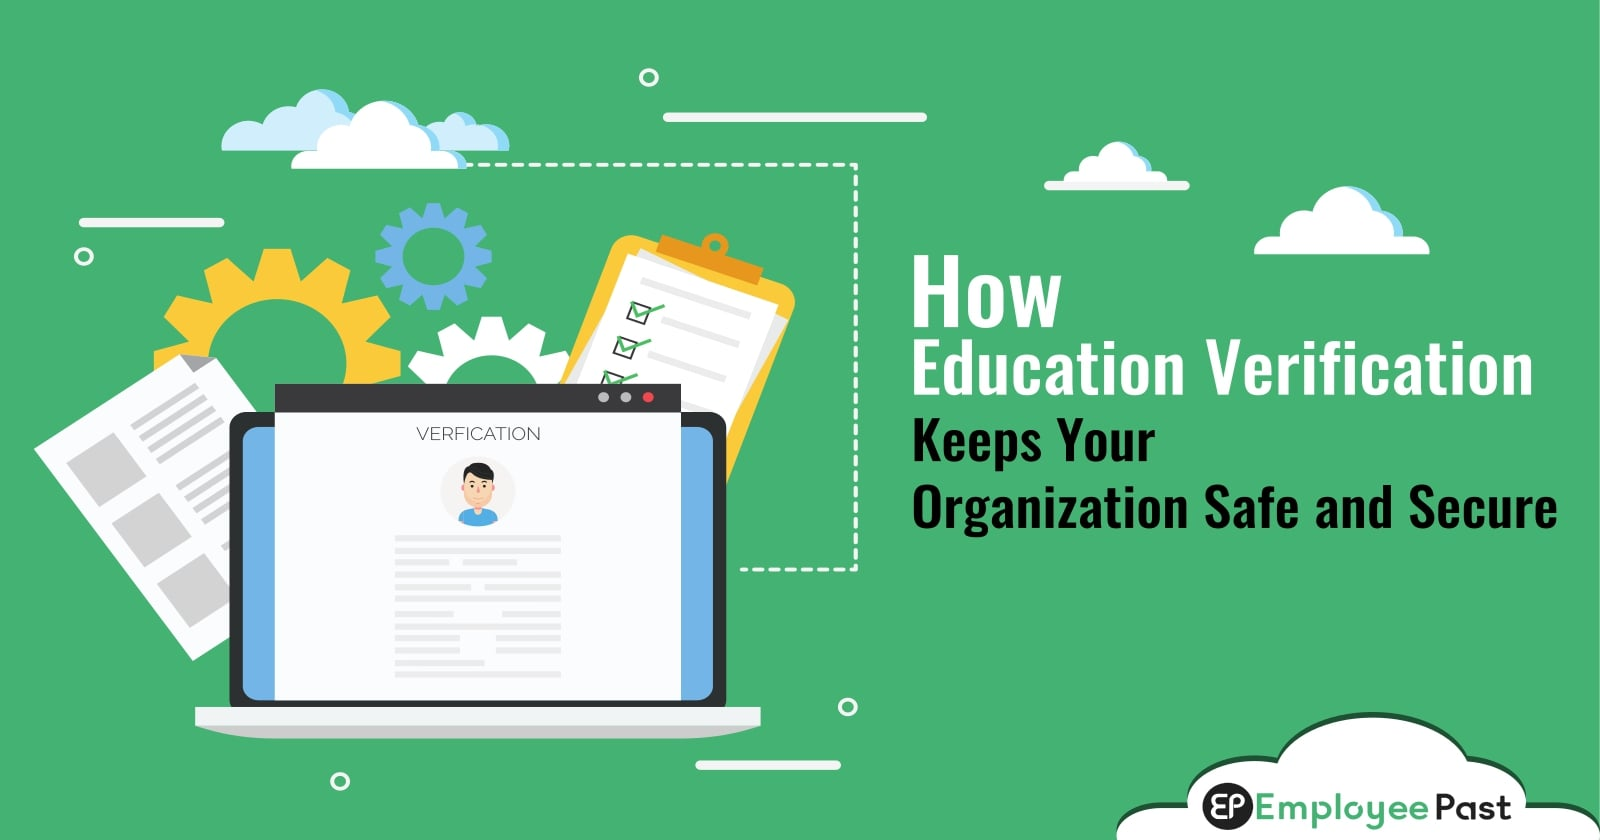 How Education Verification Keeps Your Organization Safe and Secure